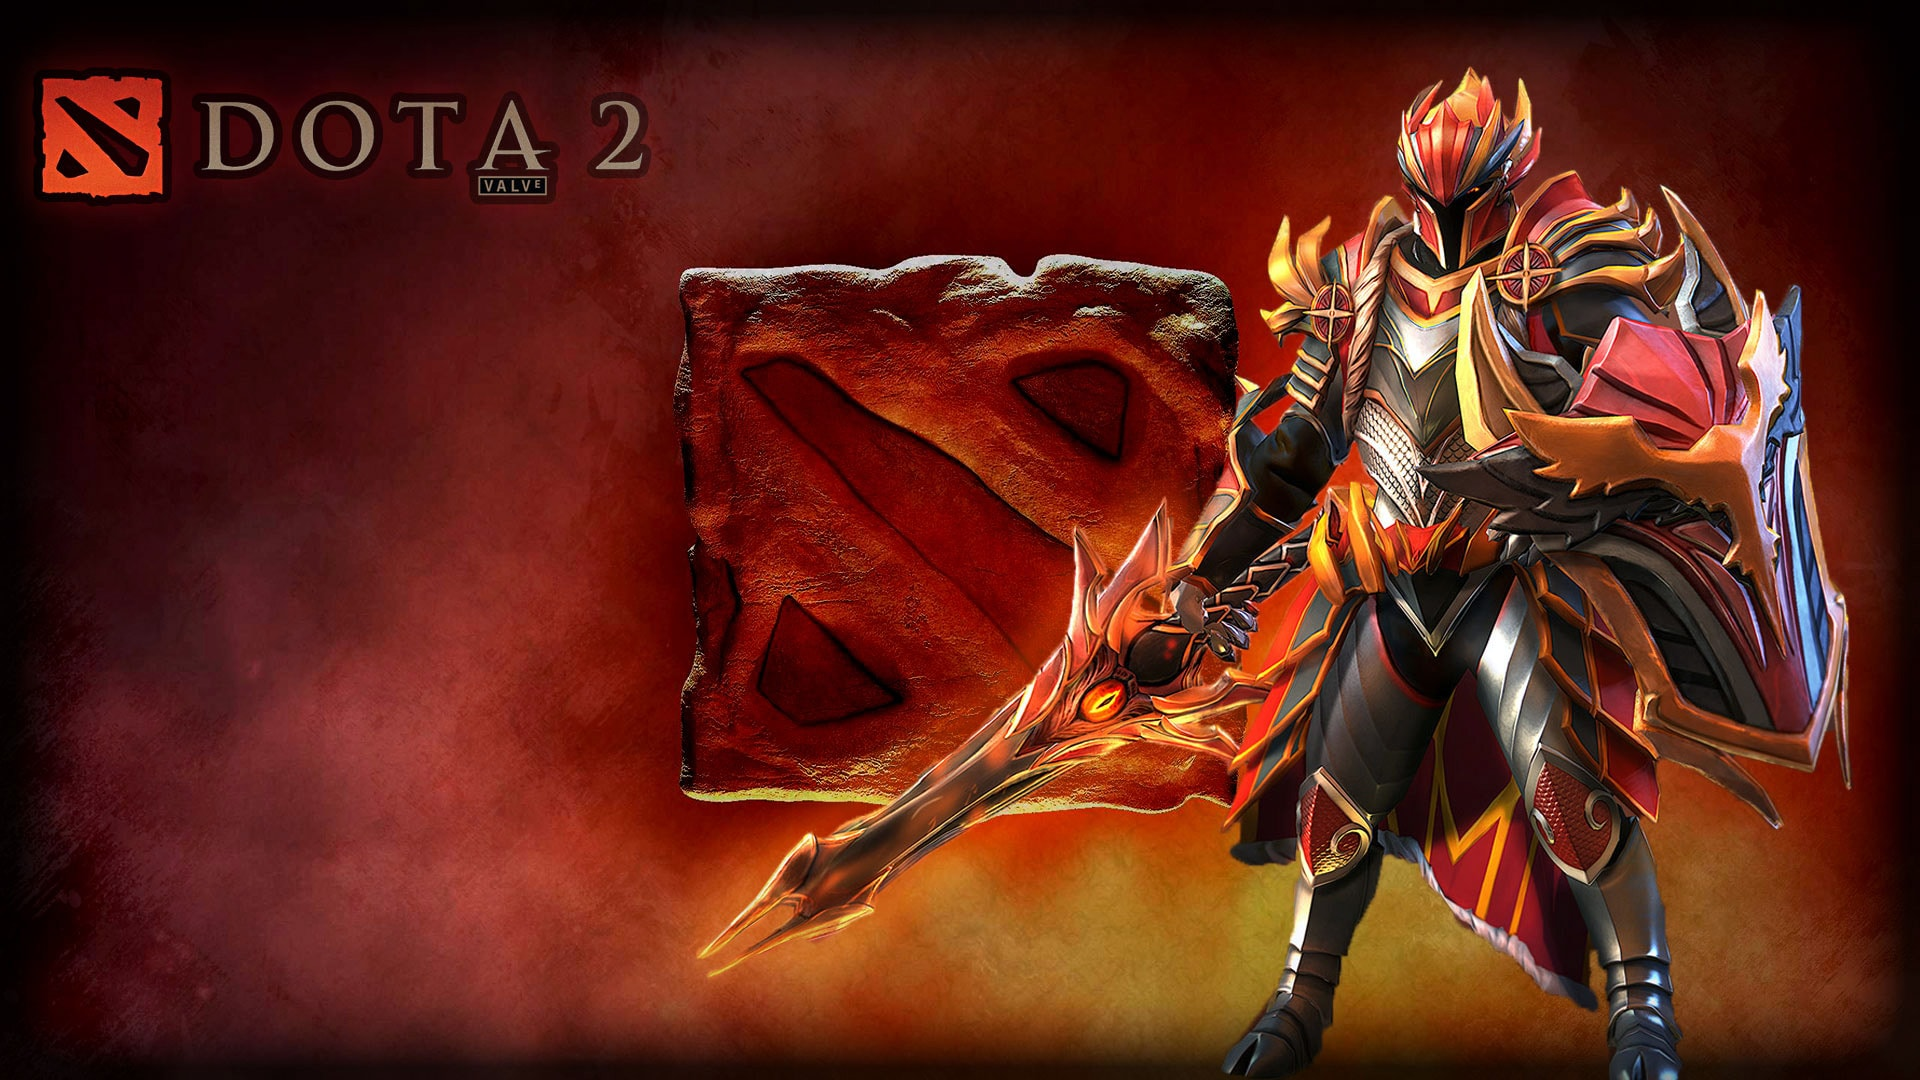 Dota Wallpapers HD Desktop Backgrounds Images and Pictures